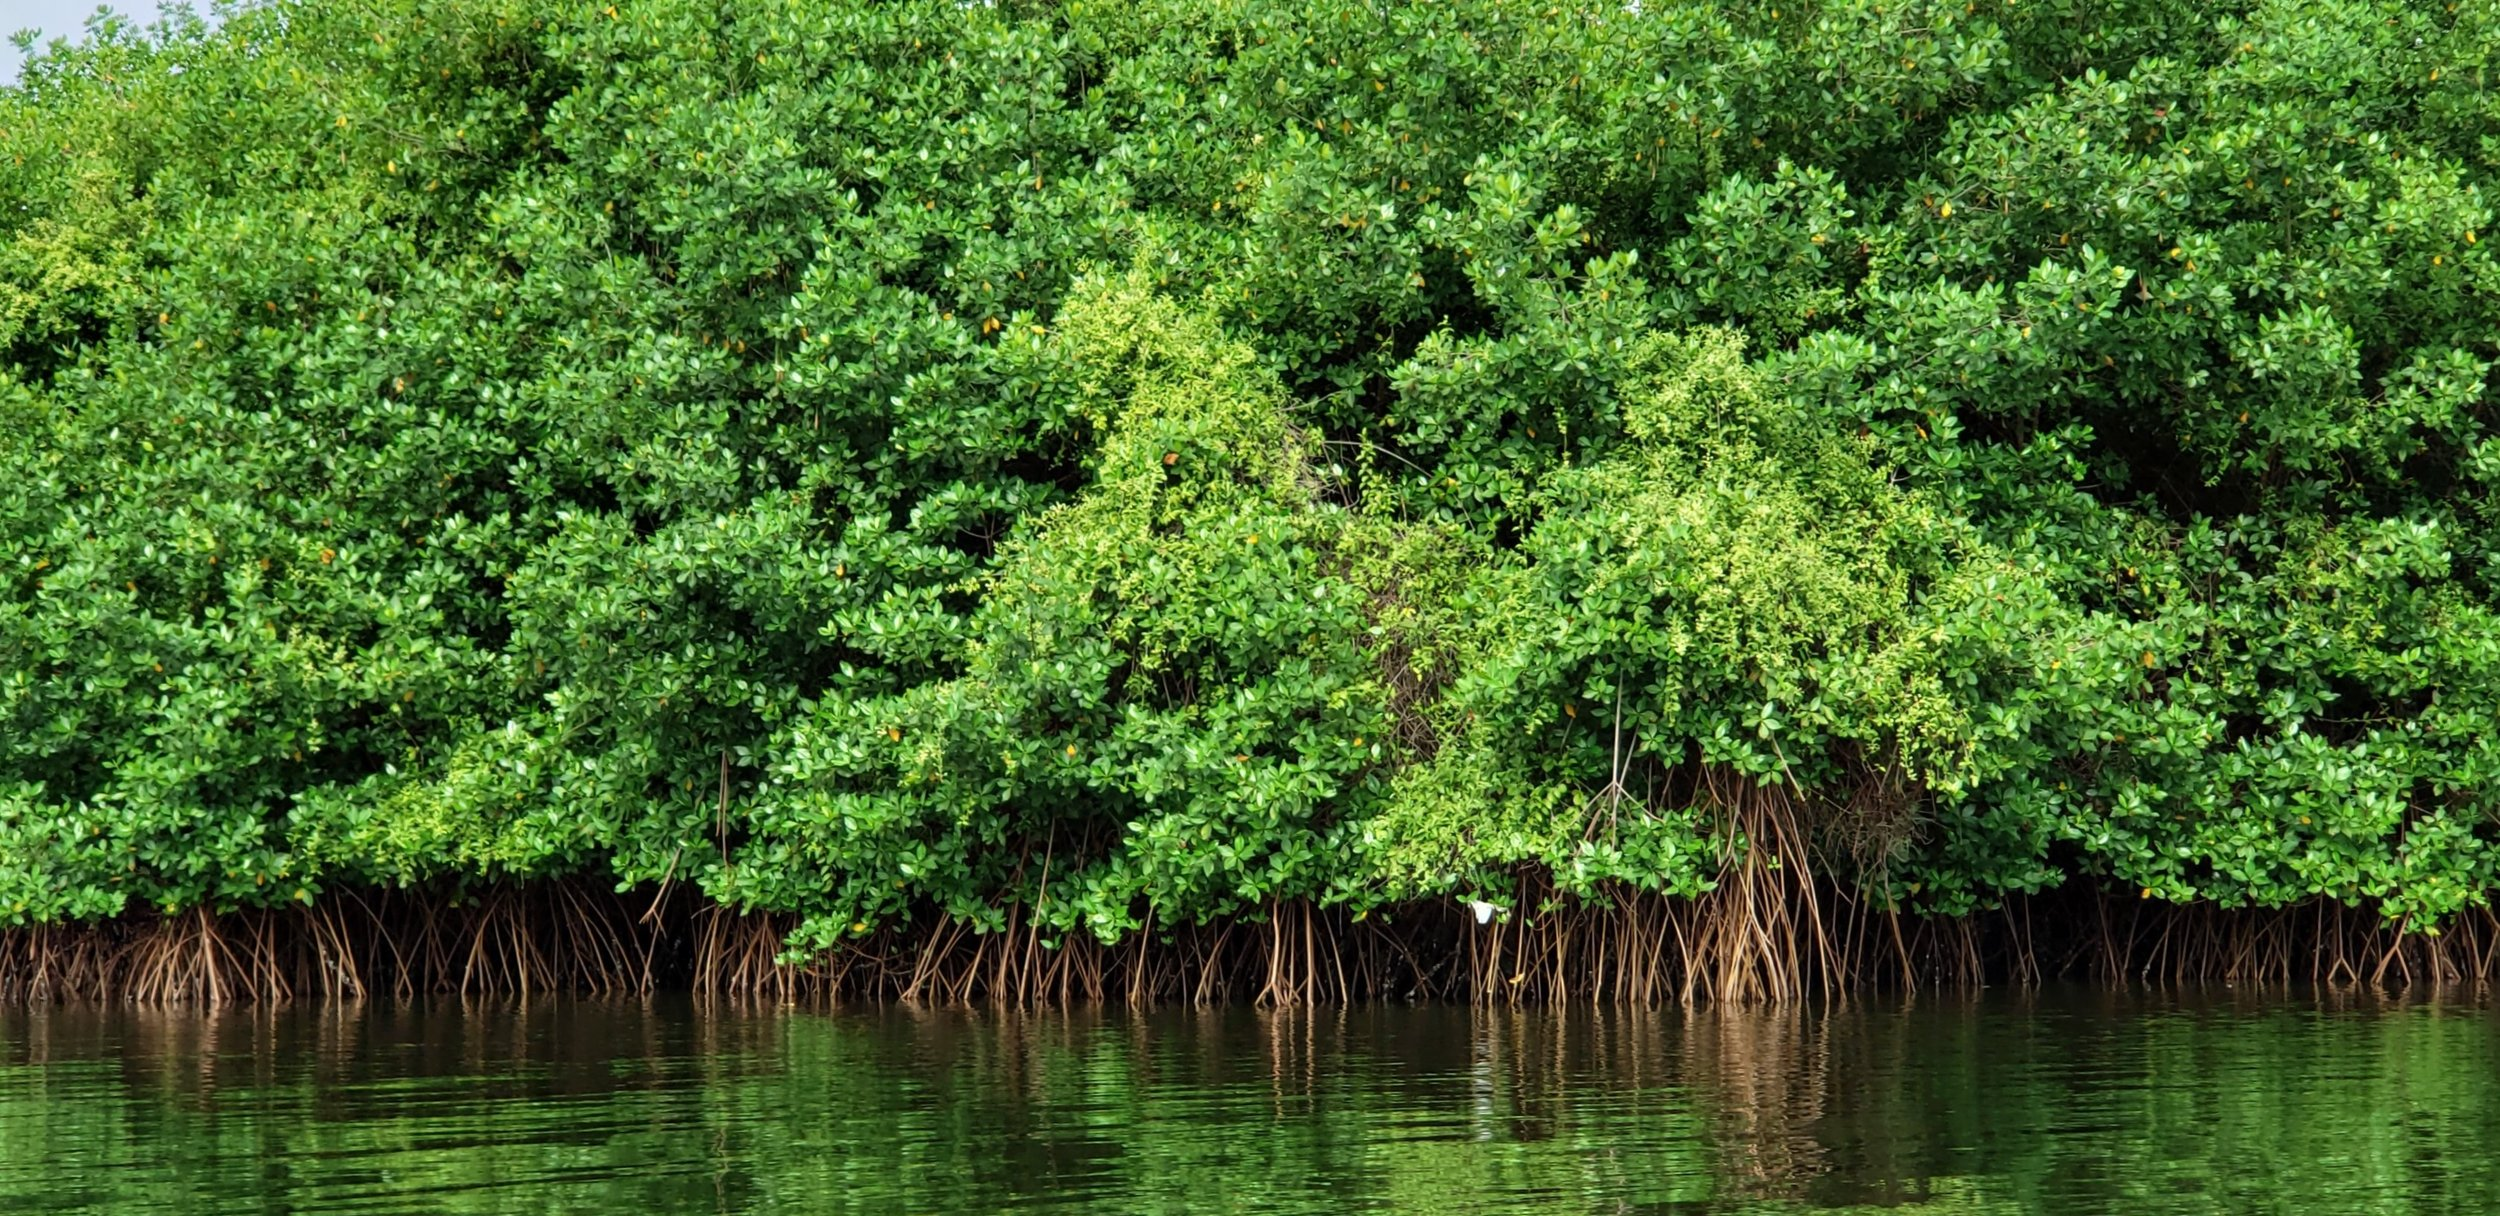 Socio Manglar aims to incorporate at least 100,000 hectares of Ecuador's remaining mangroves in the program within four years.